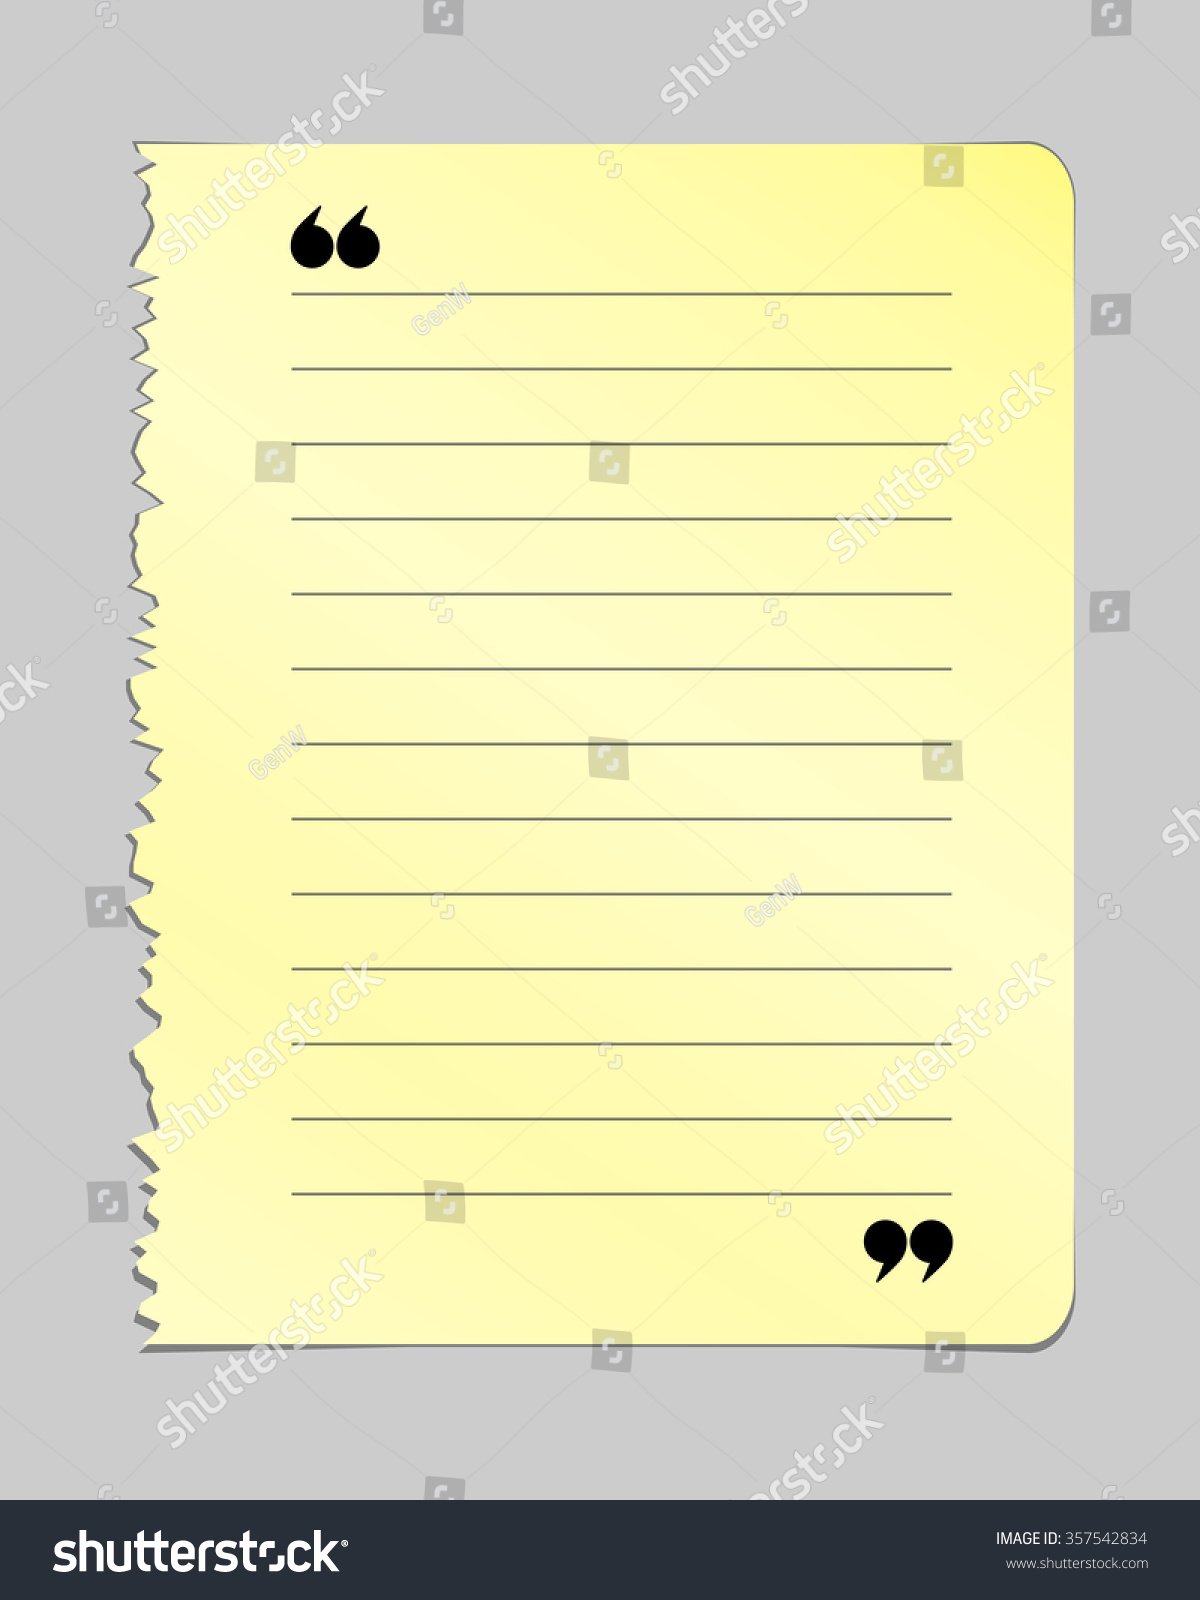 realistic torn notebook page yellow note stock vector (royalty free